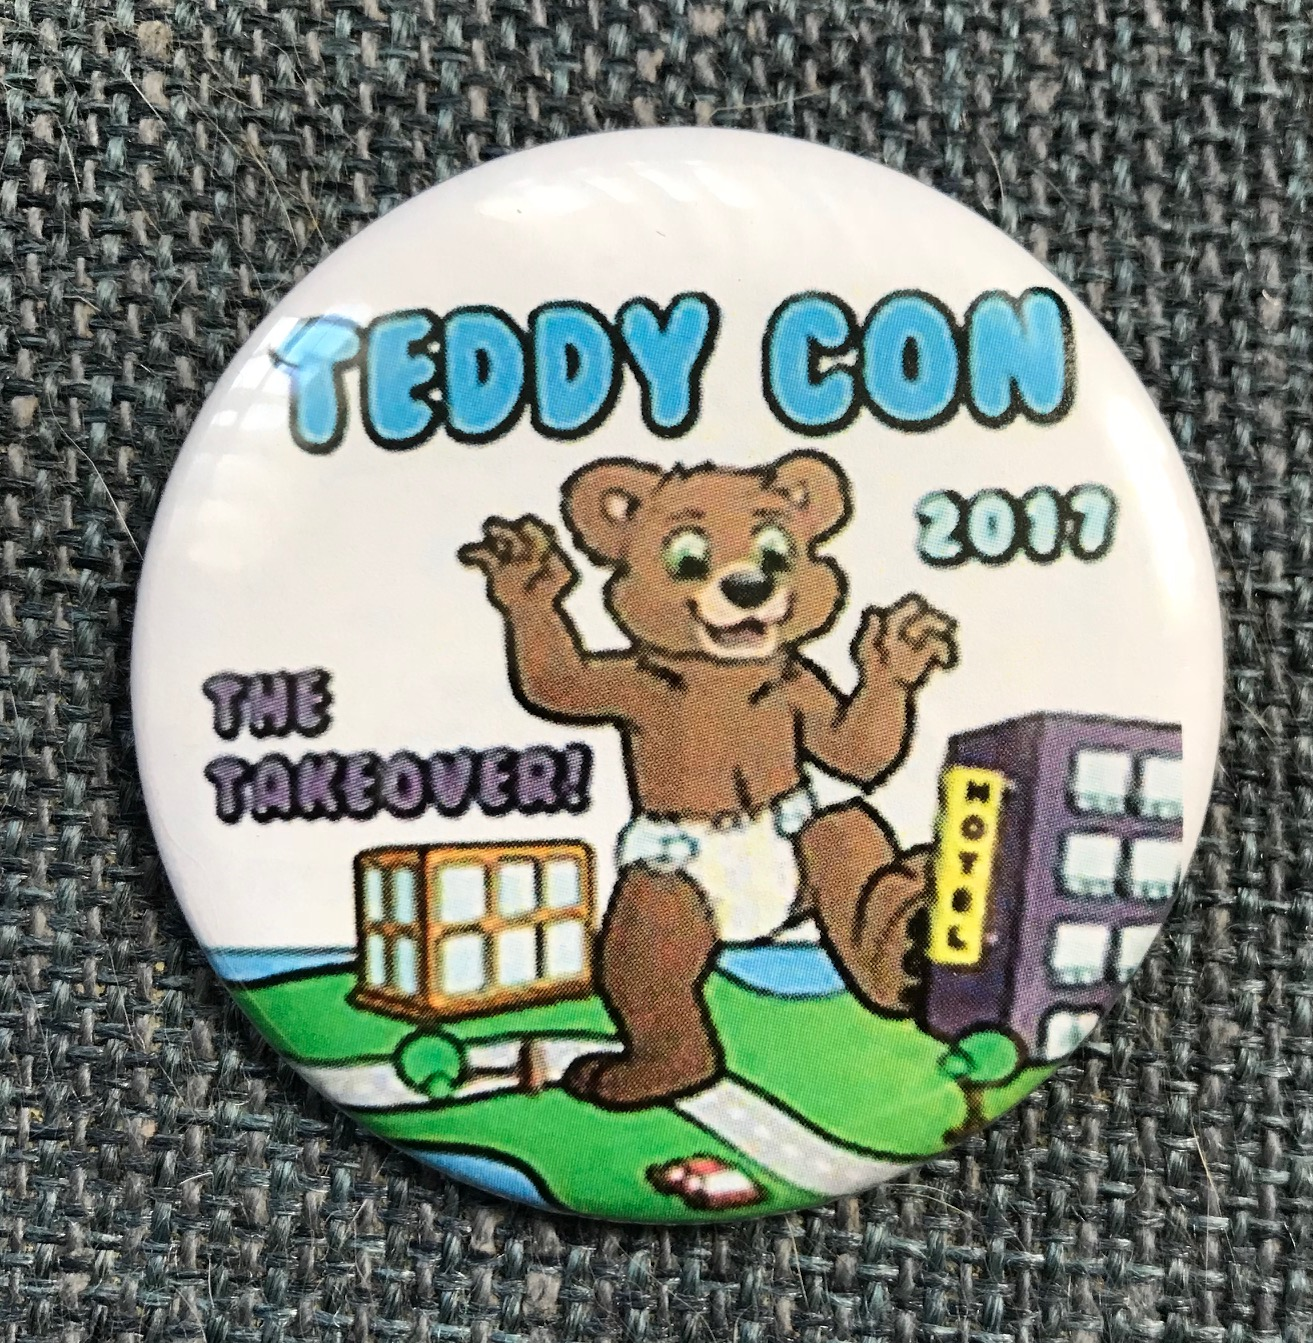 TeddyCon 2017 Button